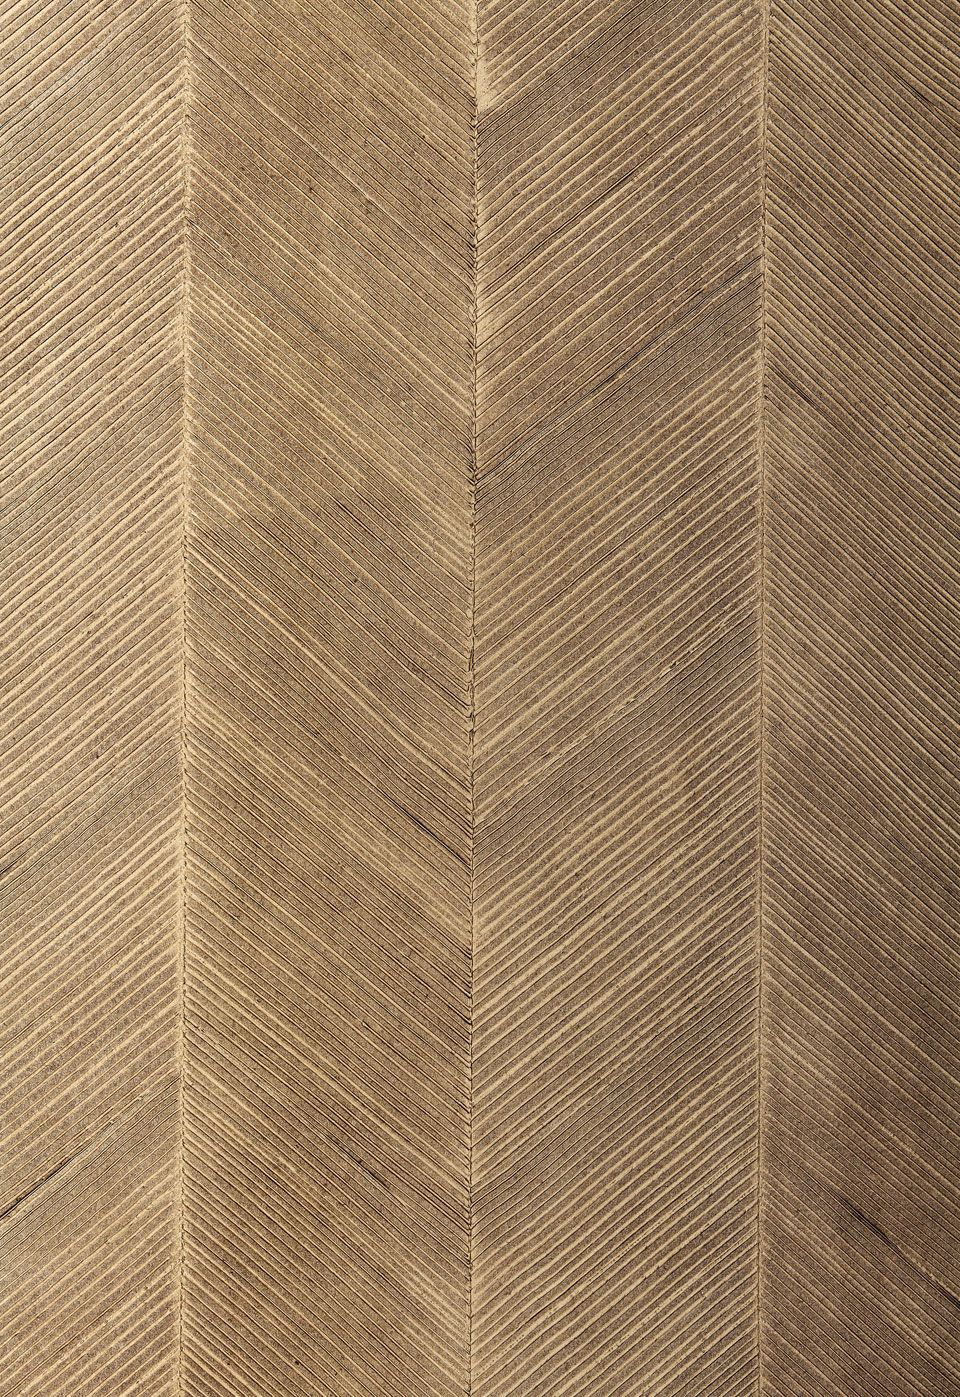 Wallcovering / Wallpaper Chevron Texture in Sable